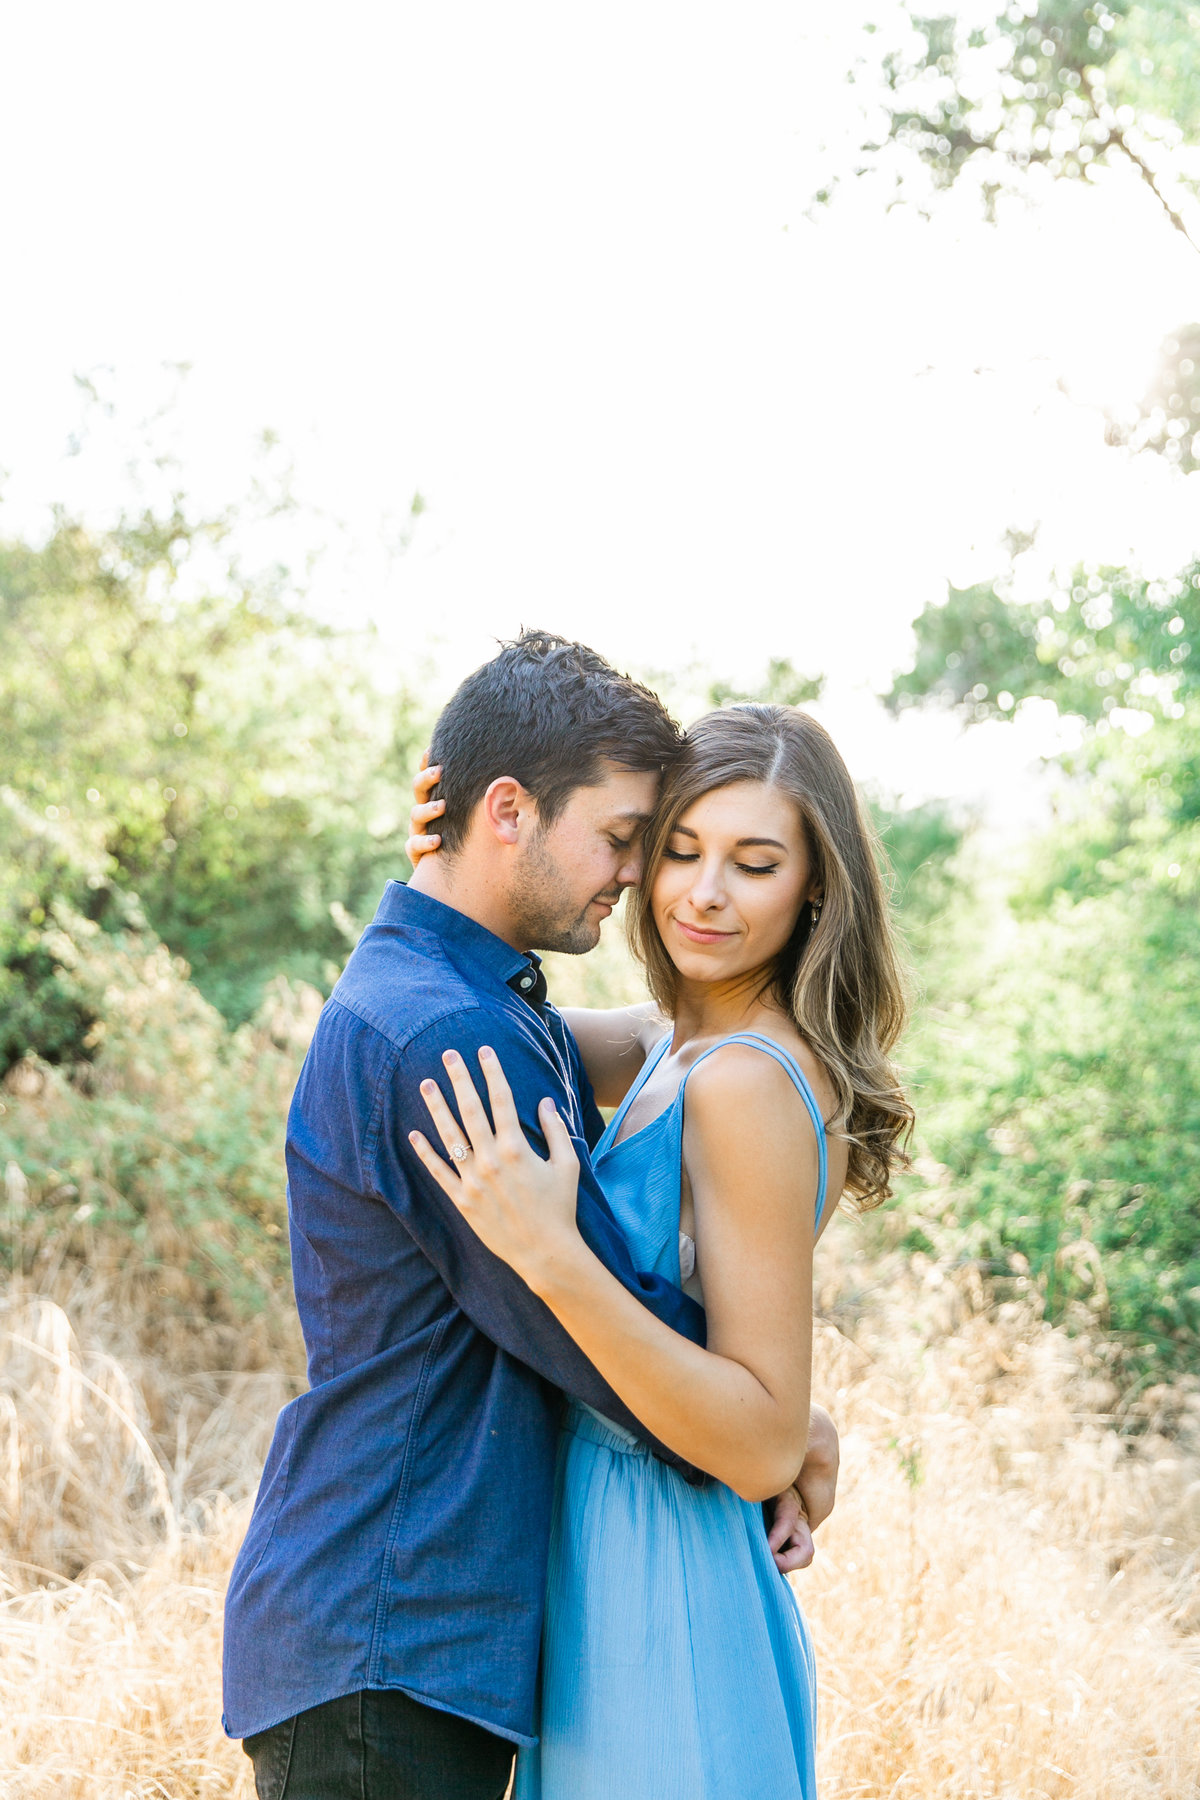 Karlie Colleen Photography - Arizona Desert Engagement - Brynne & Josh -51